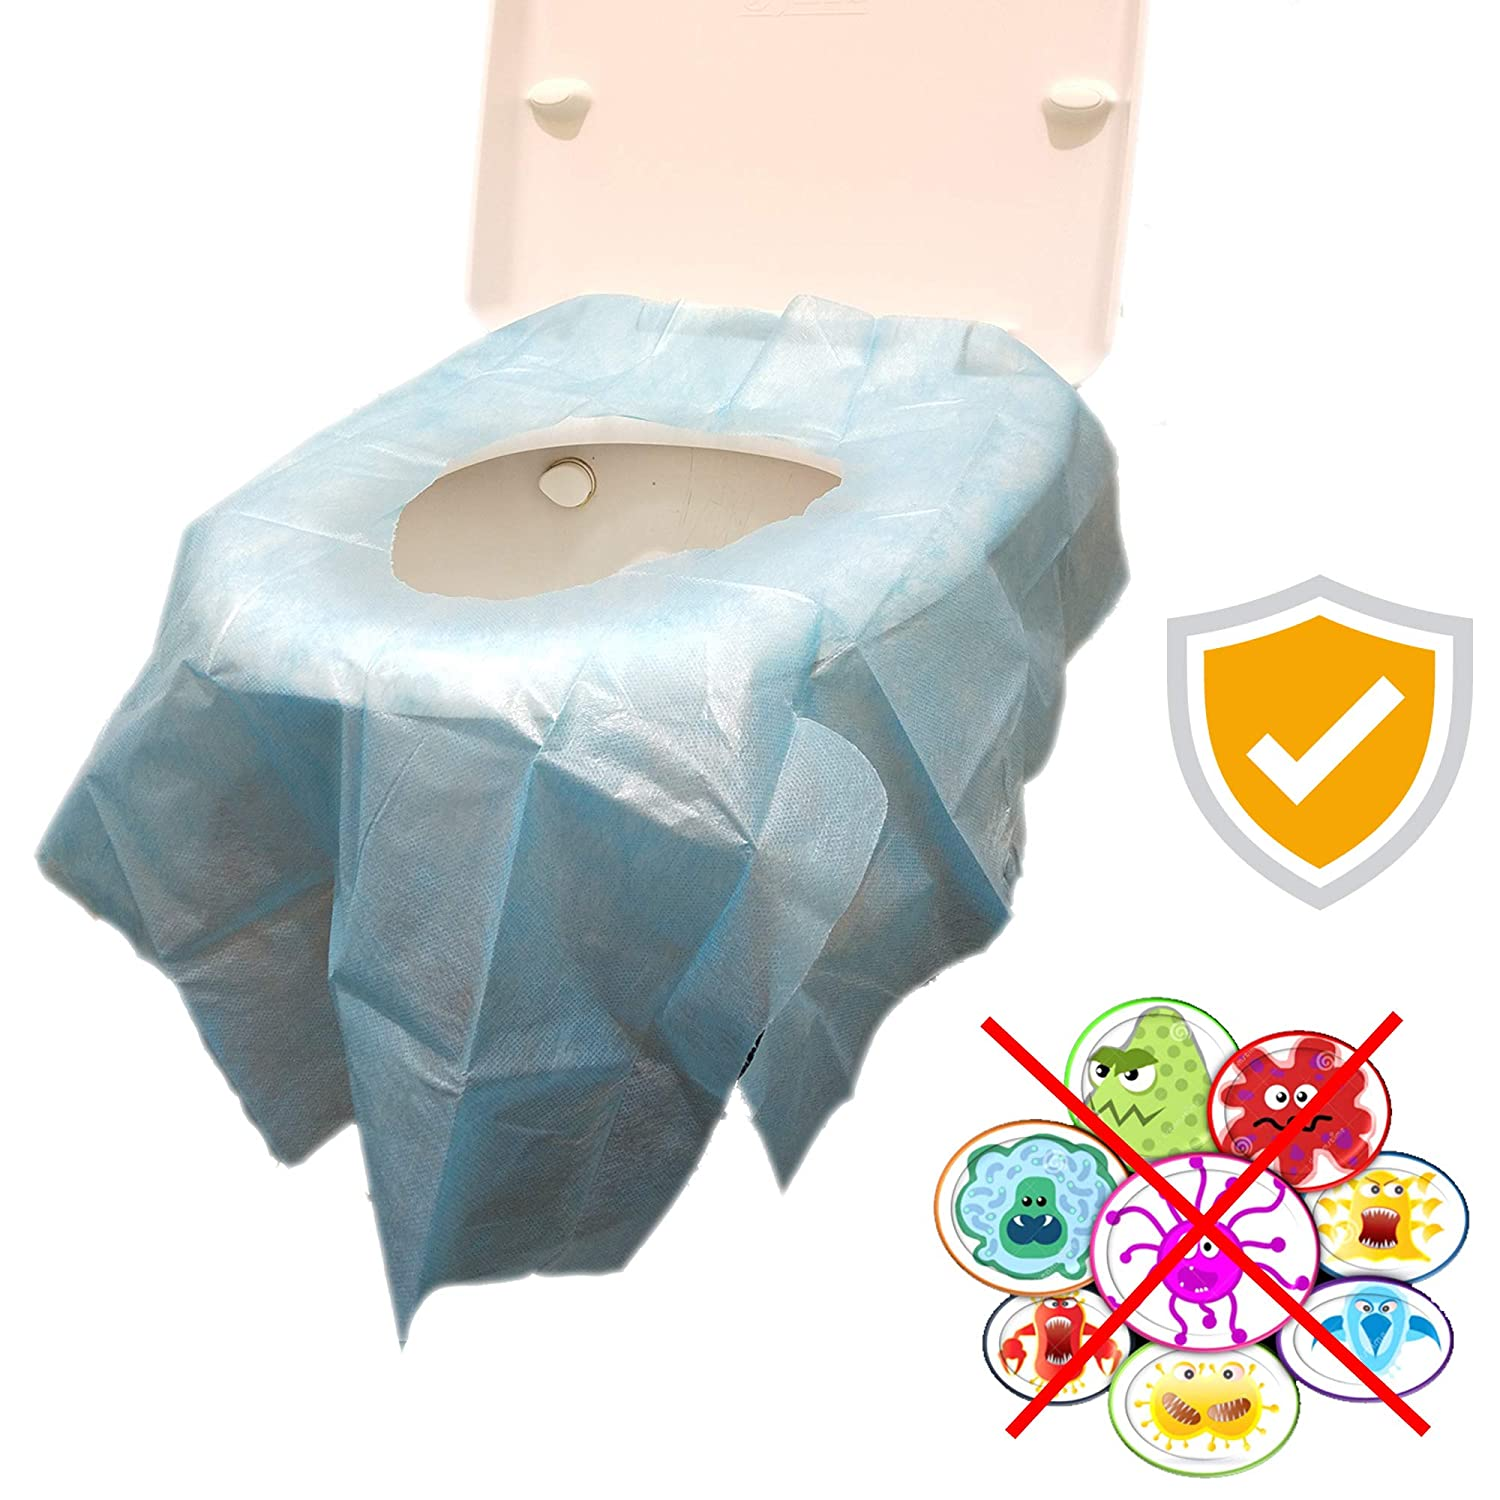 Toilet Seat Covers Disposable Kids Toddlers Potty Trainning Cover Extra Large Star 20 Packs + 20pcs Aprice